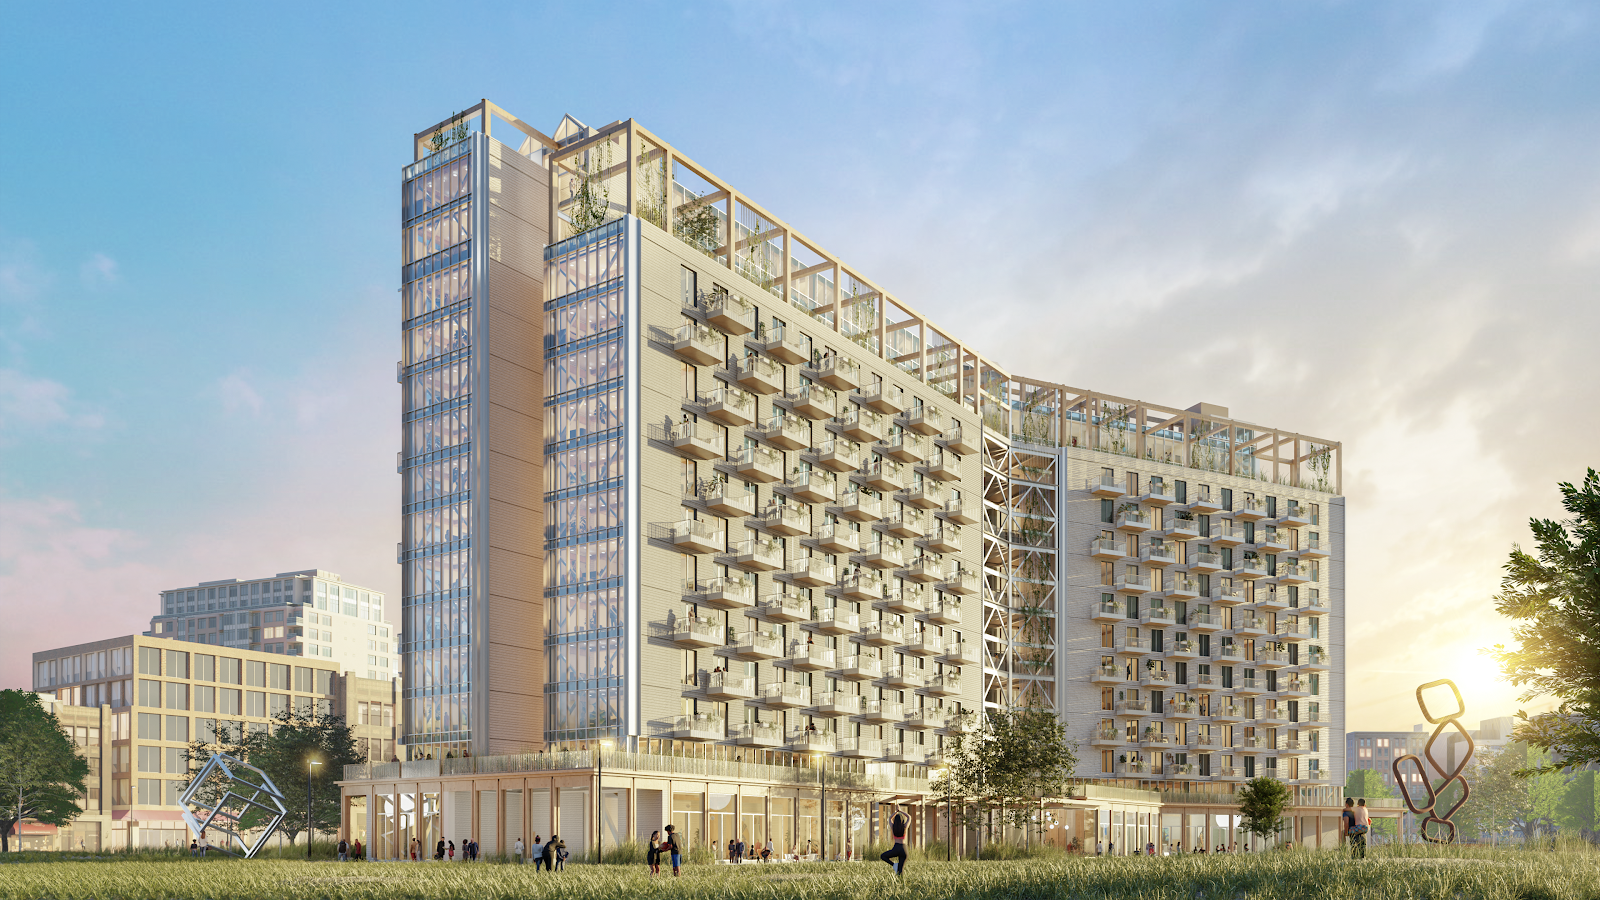 A rendering of the PMX 15 mass timber building model.